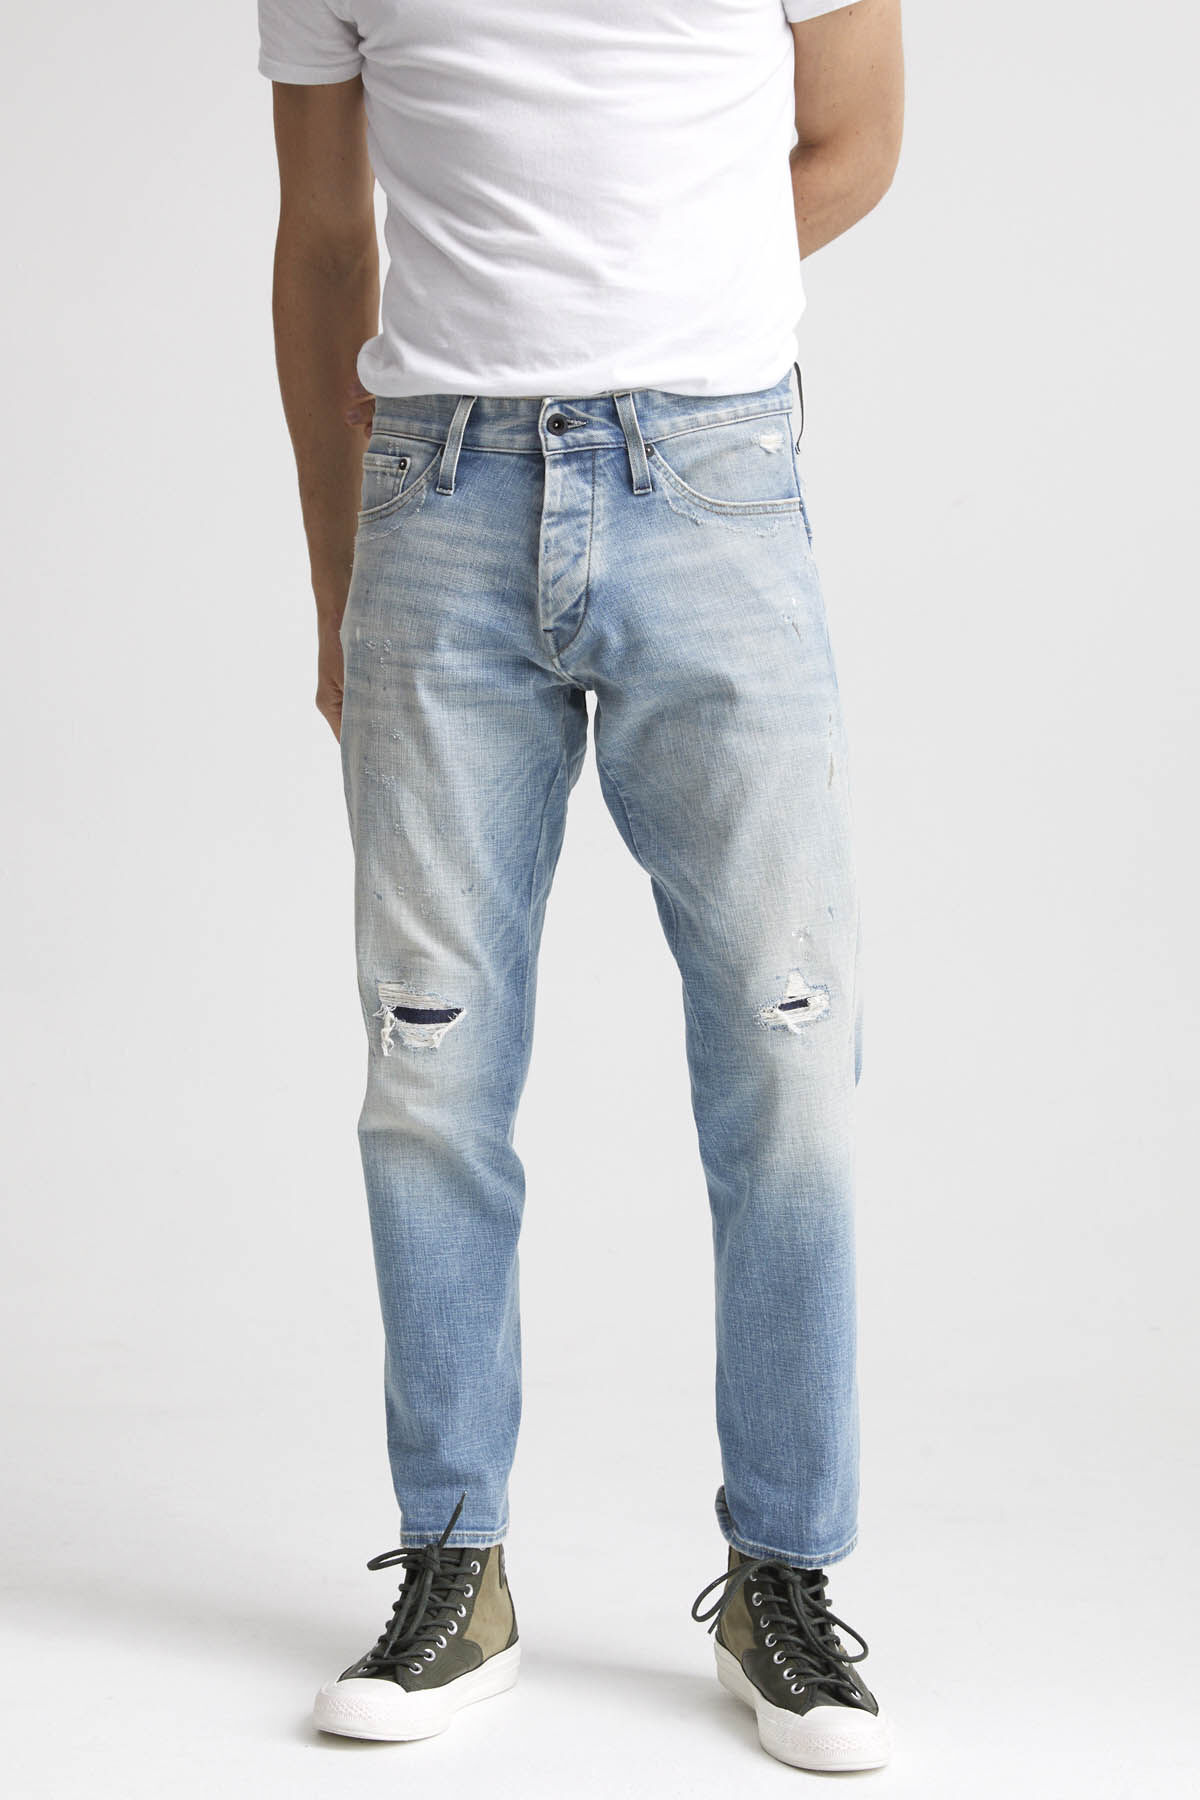 KINETIC Ripped & Repaired Denim - Tapered Fit